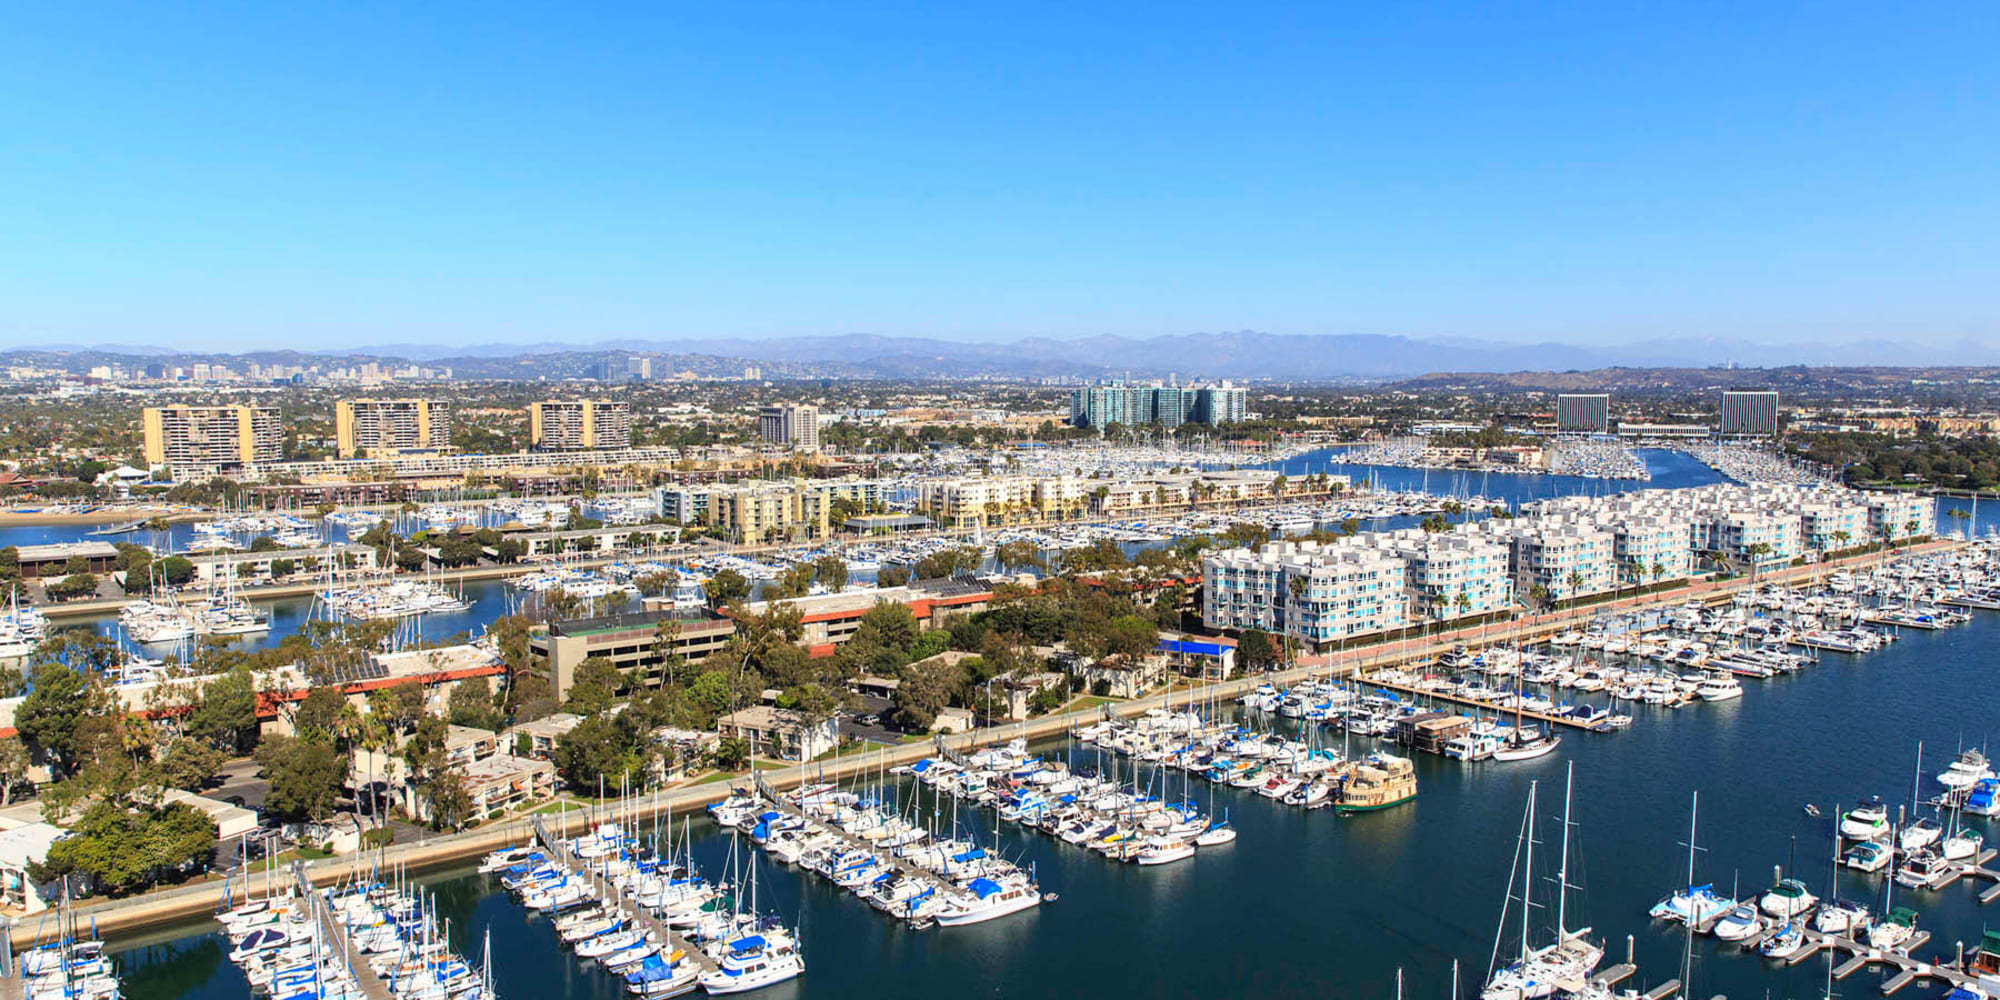 Aerial view of our luxury harborside community at Esprit Marina del Rey in Marina Del Rey, California